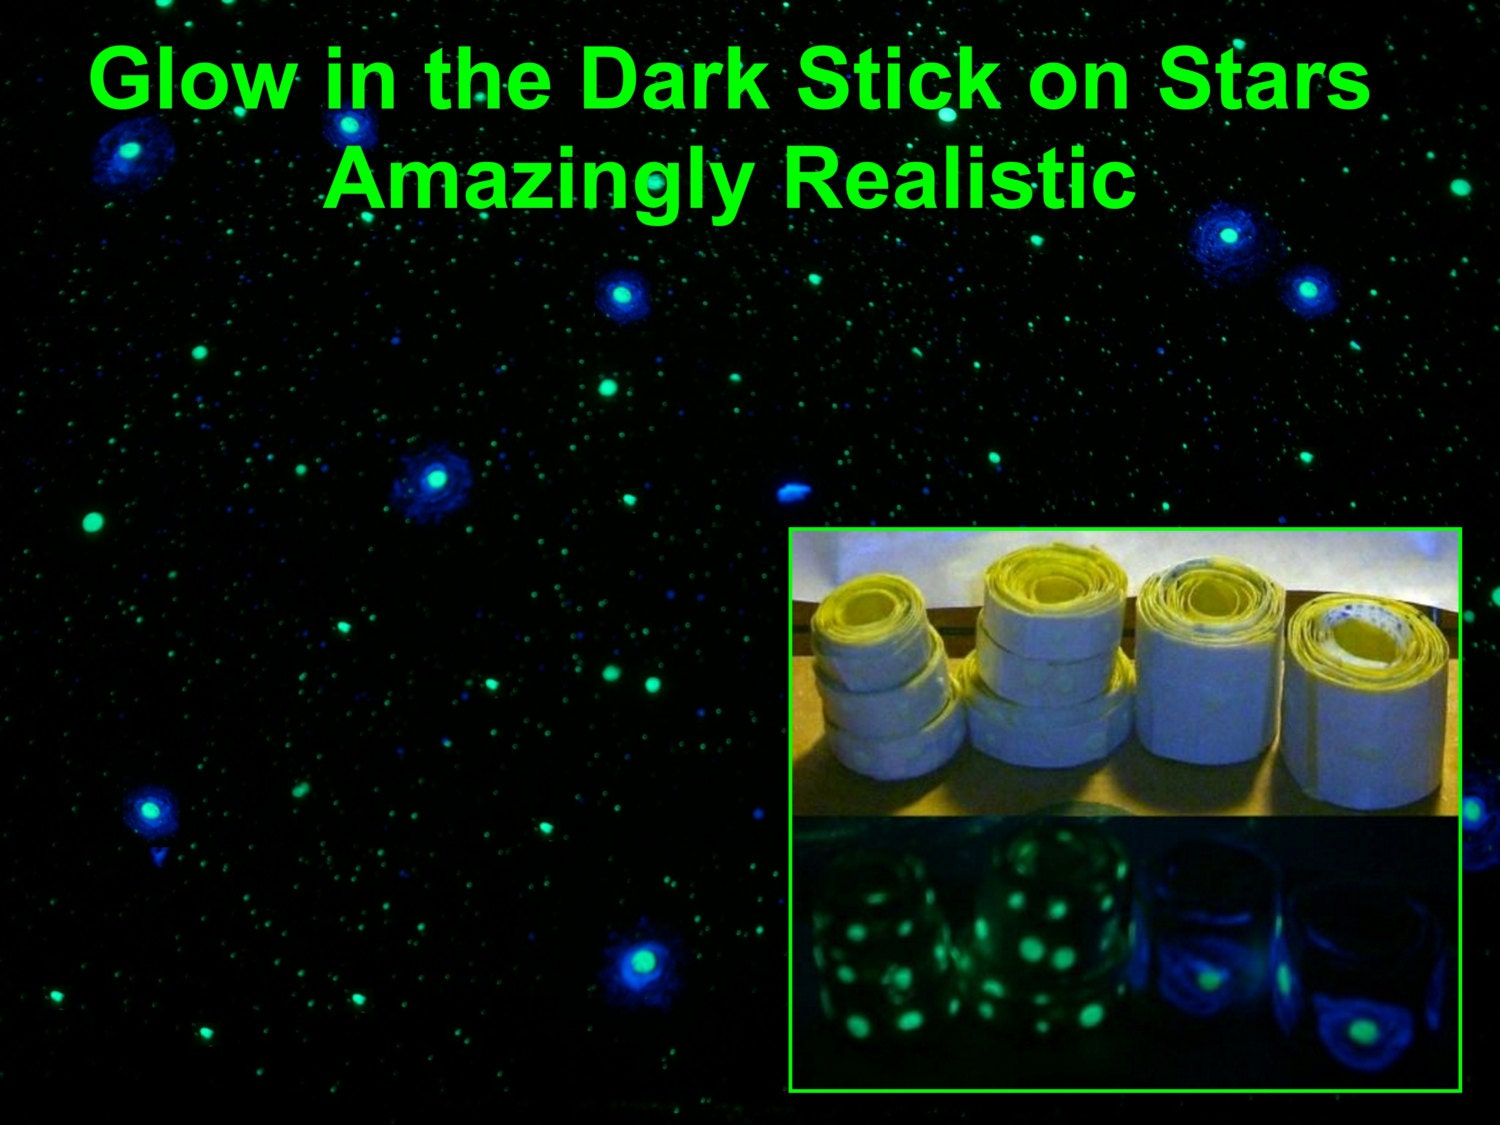 DIY Star Kit: FULL Bedroom Ceiling -Glow in the Dark - Peel and Stick - Hand Painted Glows ALL night long